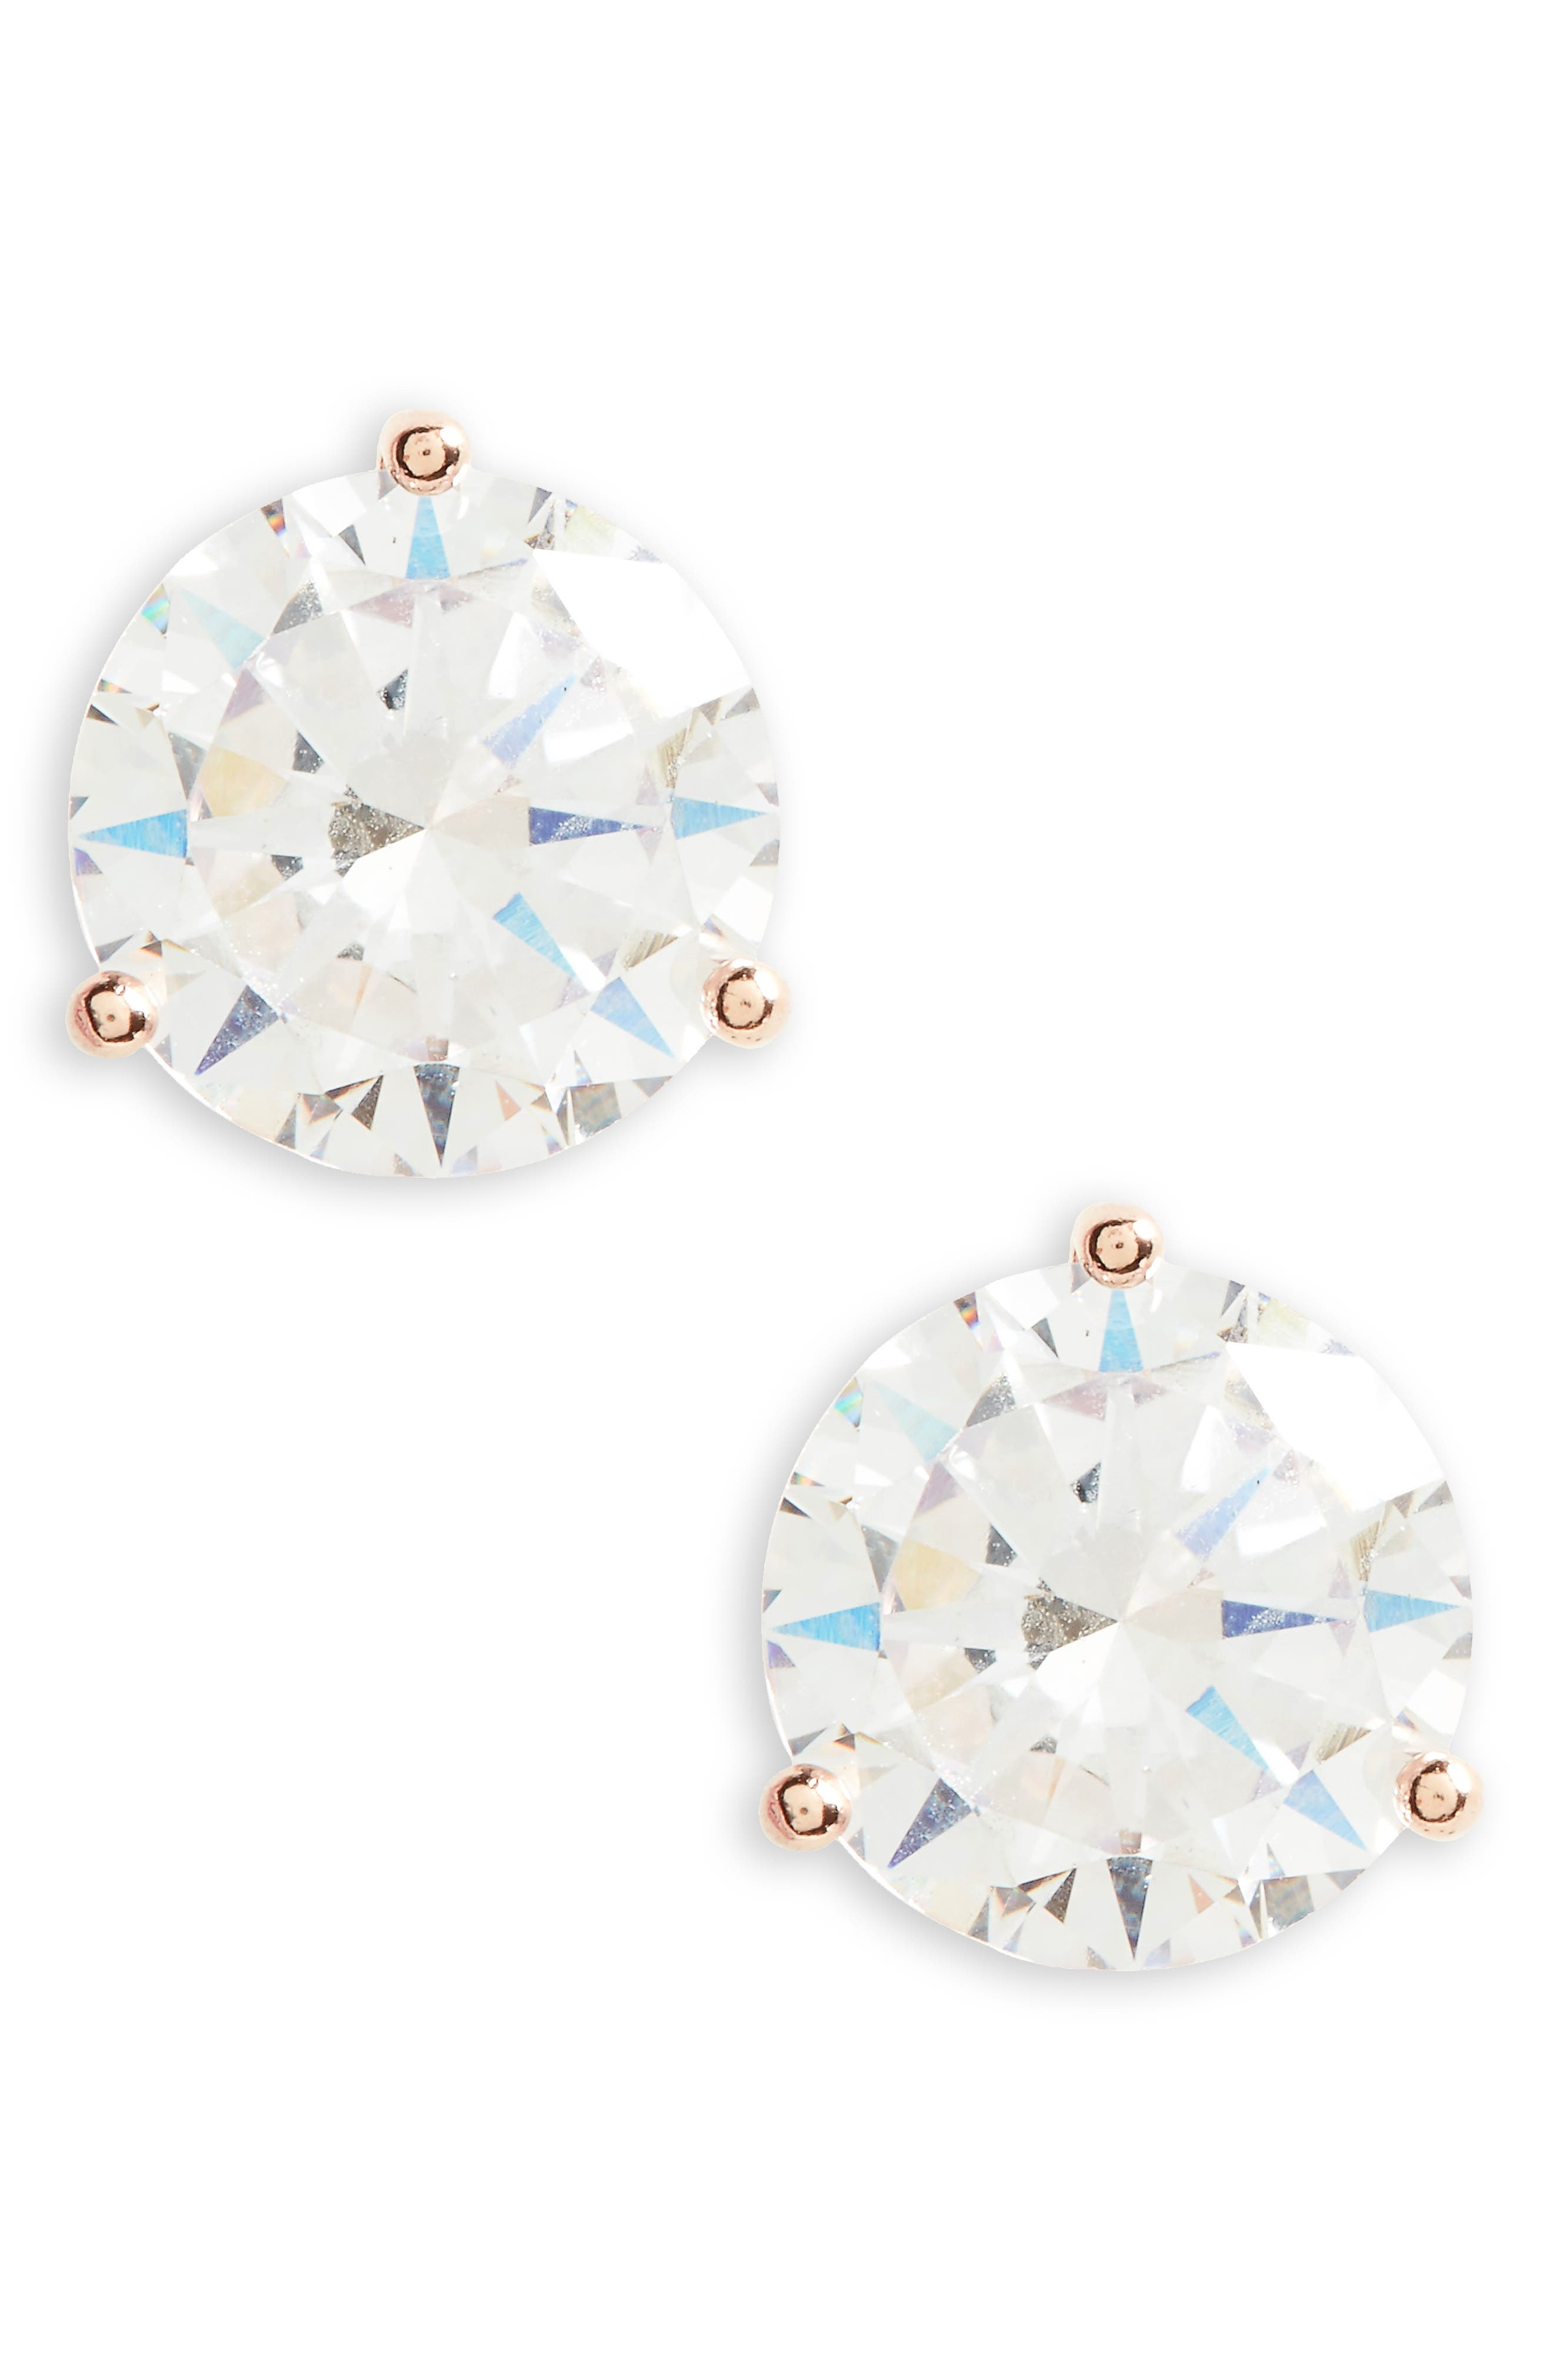 NORDSTROM 6ct tw Cubic Zirconia Earrings, Main, color, CLEAR- ROSE GOLD